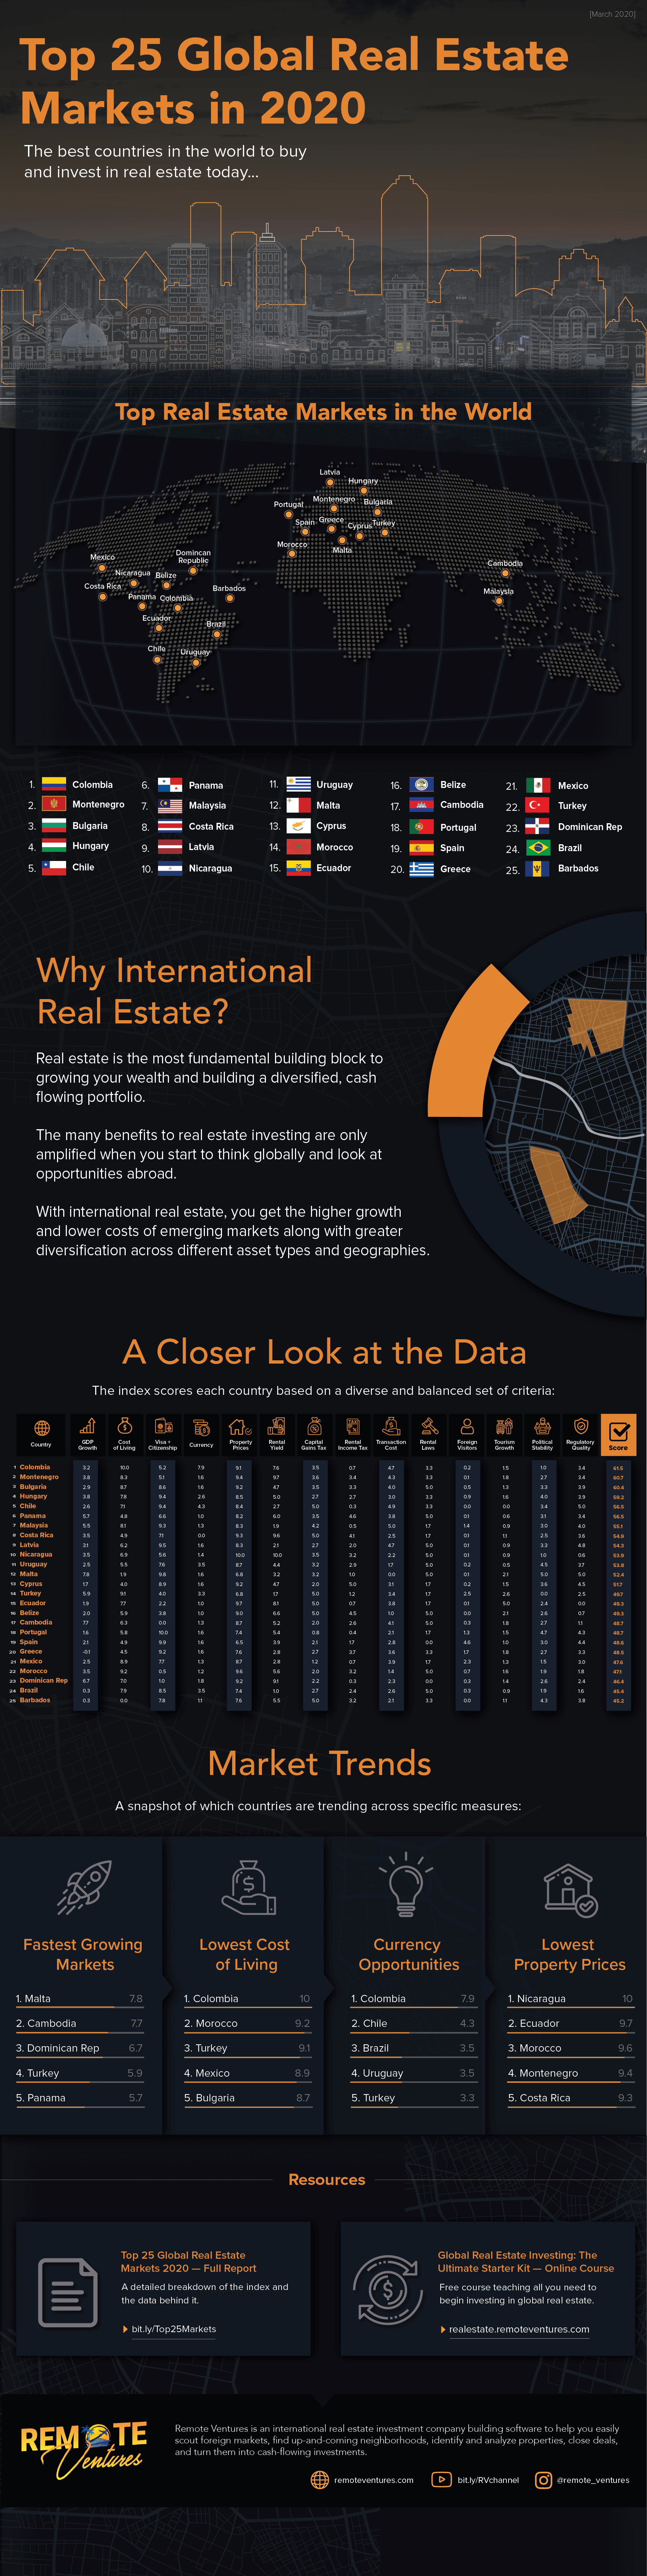 Top 25 Global Real Estate Markets in 2020